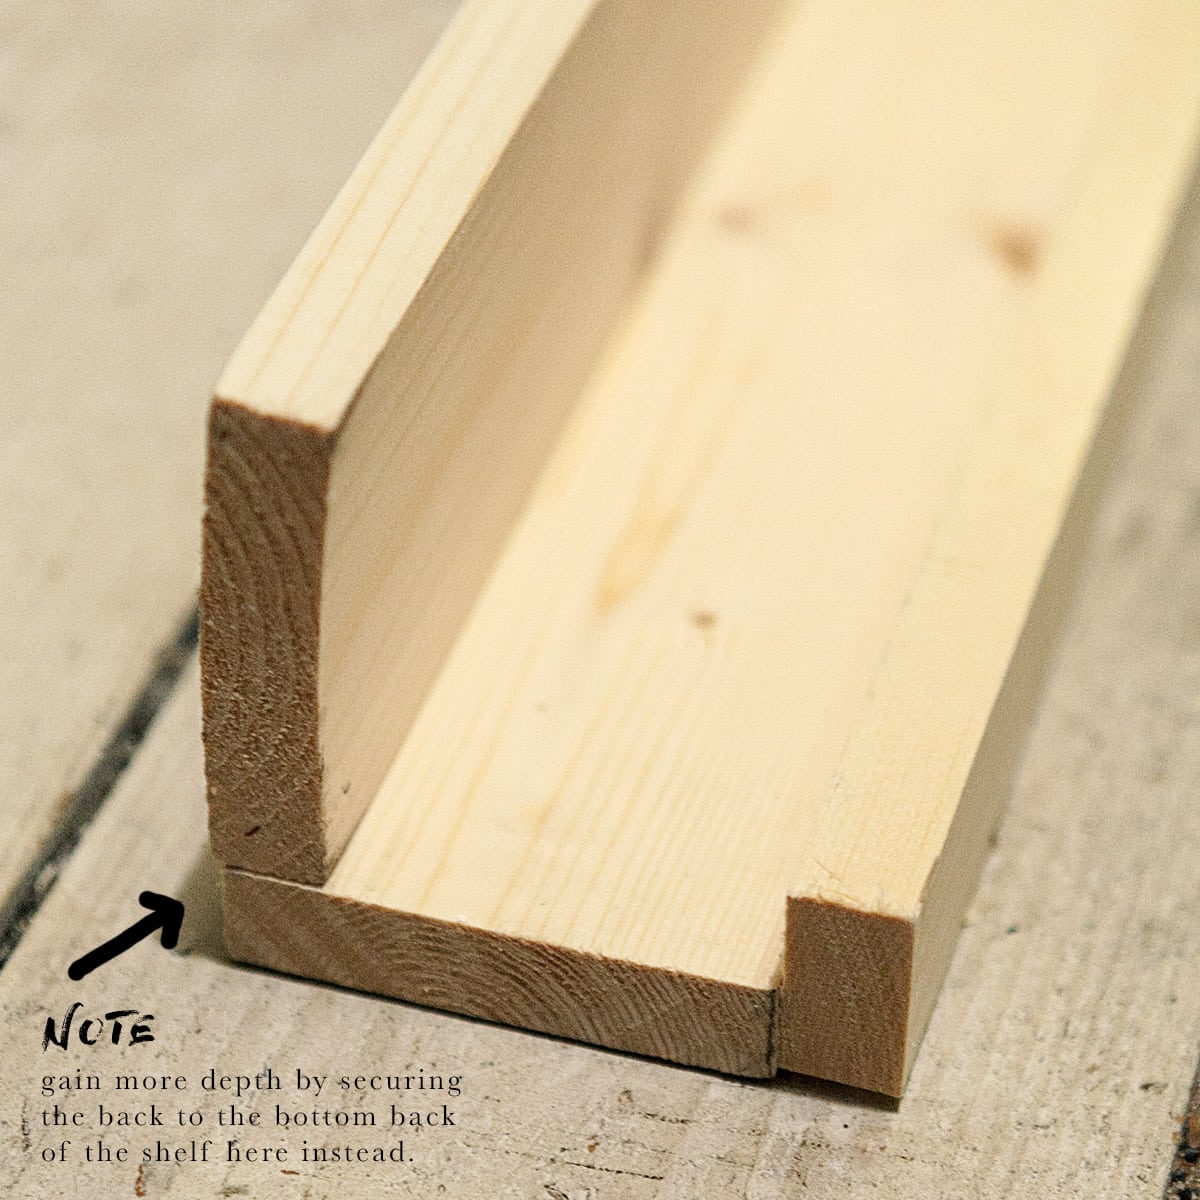 diy-picture-ledges-how-to-build-photo-shelf-wood-planks-what-you-need-quick-easy-inexpensive-jessica-brigham-blog